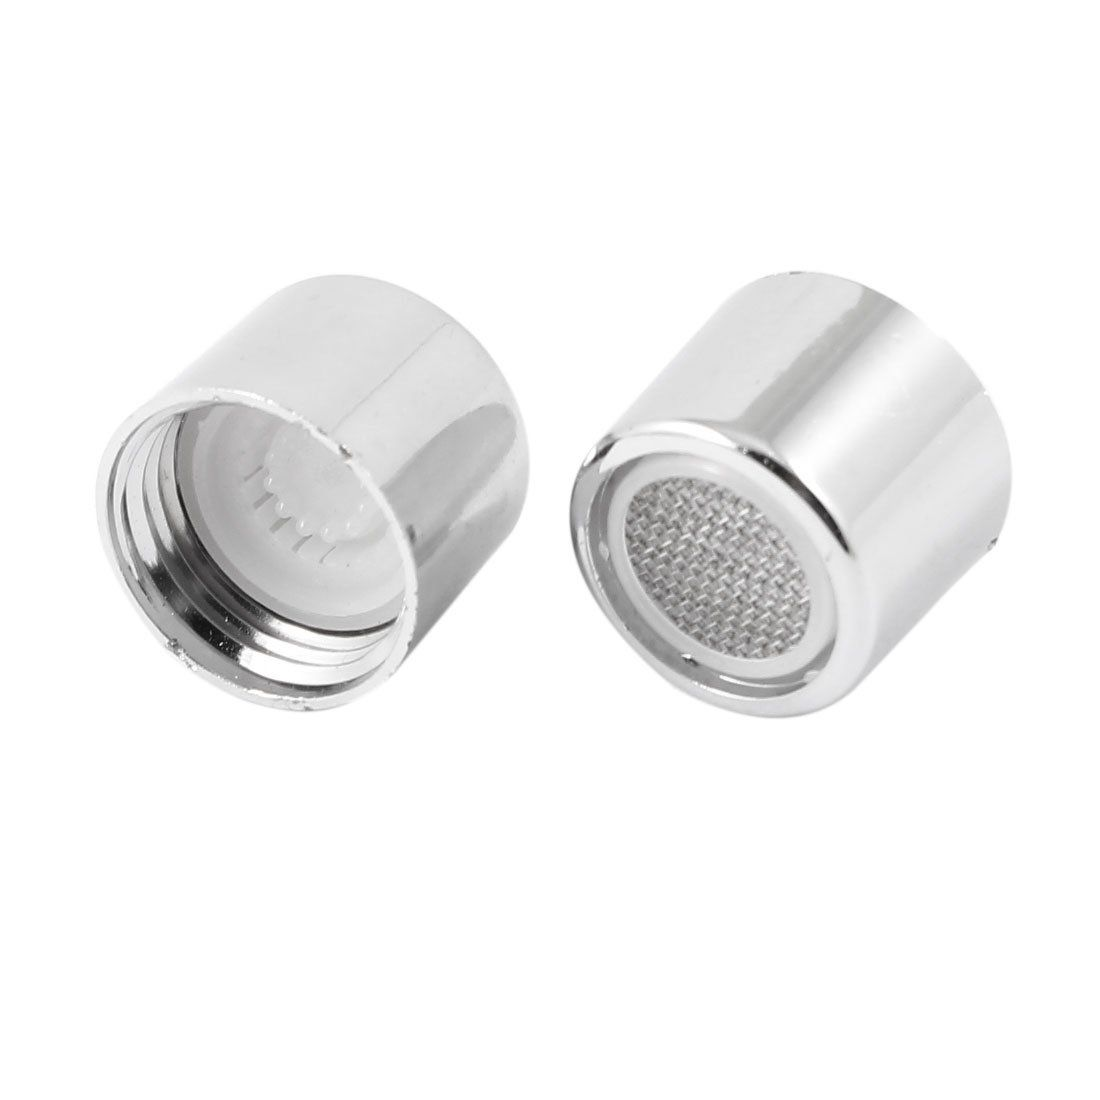 2pcs Plastic Water Saving Faucet Tap Spout Aerator Filter Net Nozzle Read More Reviews Of The Product By Visi Filtered Water Faucet Sink Water Filter Faucet